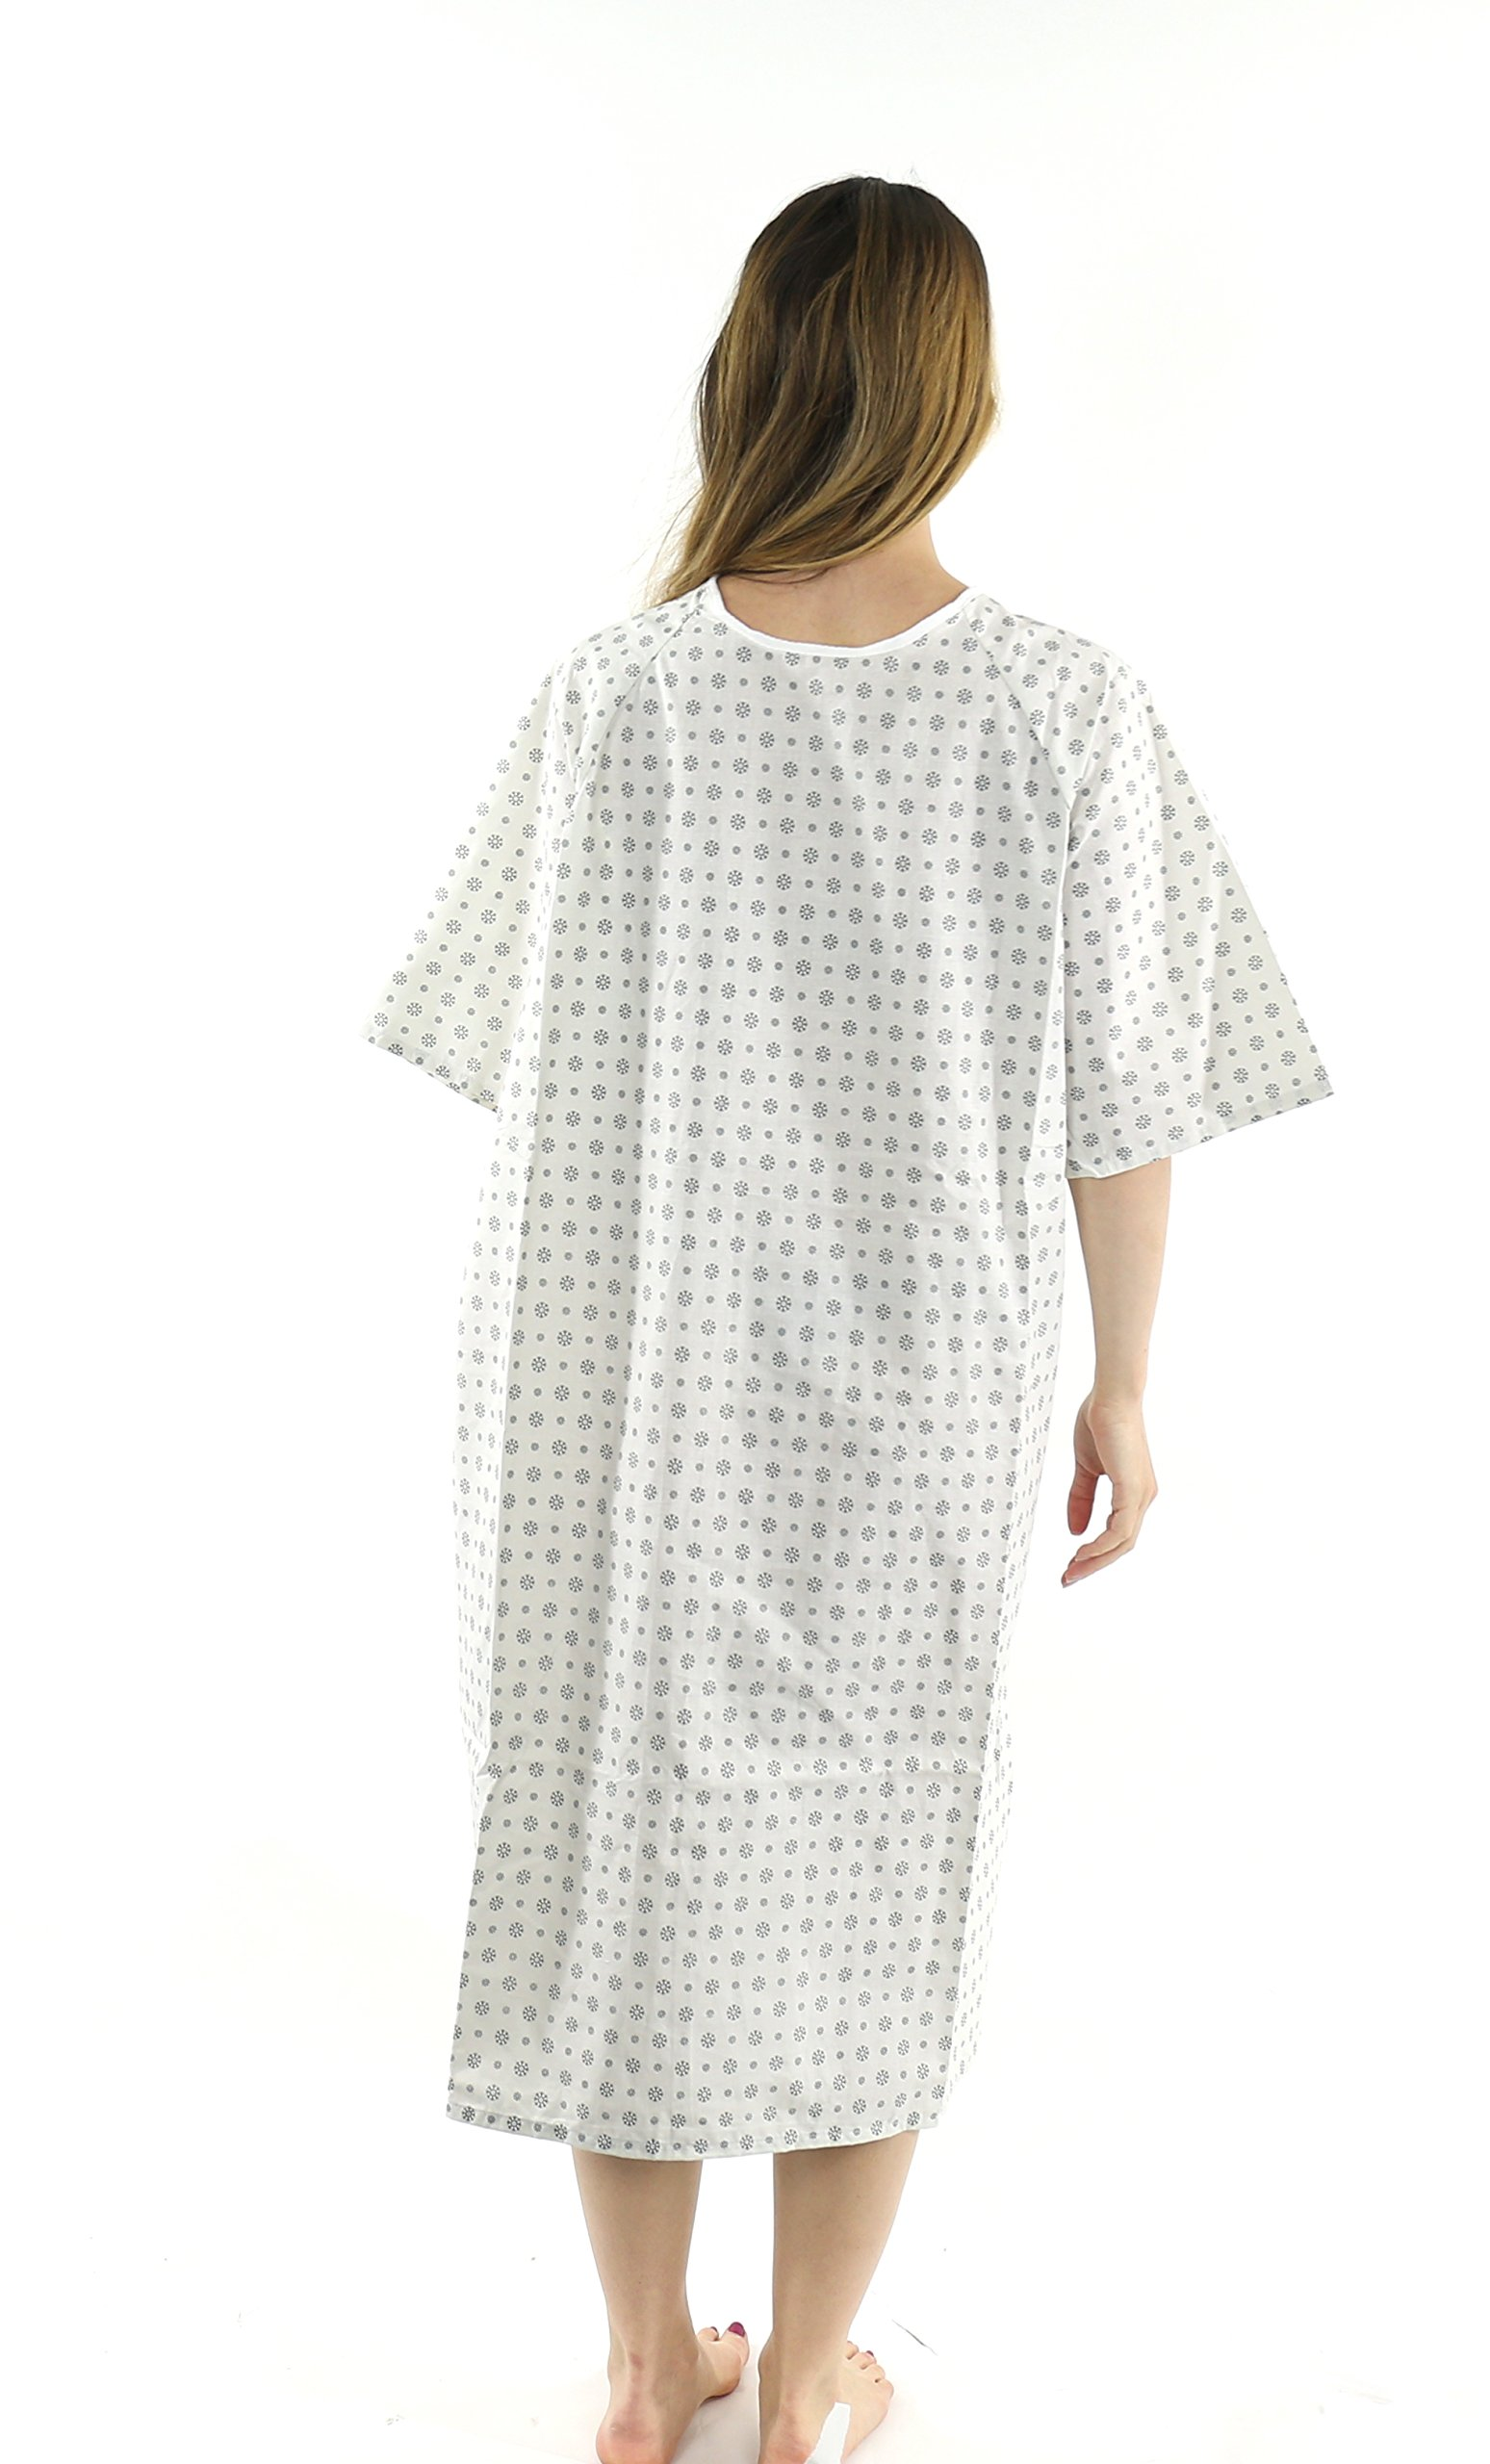 Hospital Gown (6 Pack) Cotton Blend , Useful, Fashionable Patient Gowns, Back Tie, 46'' Long & 66'' Wide, Fits All Sizes to 2xL Sizes Fit Comfortably - Hospital Gown (6 Pack)